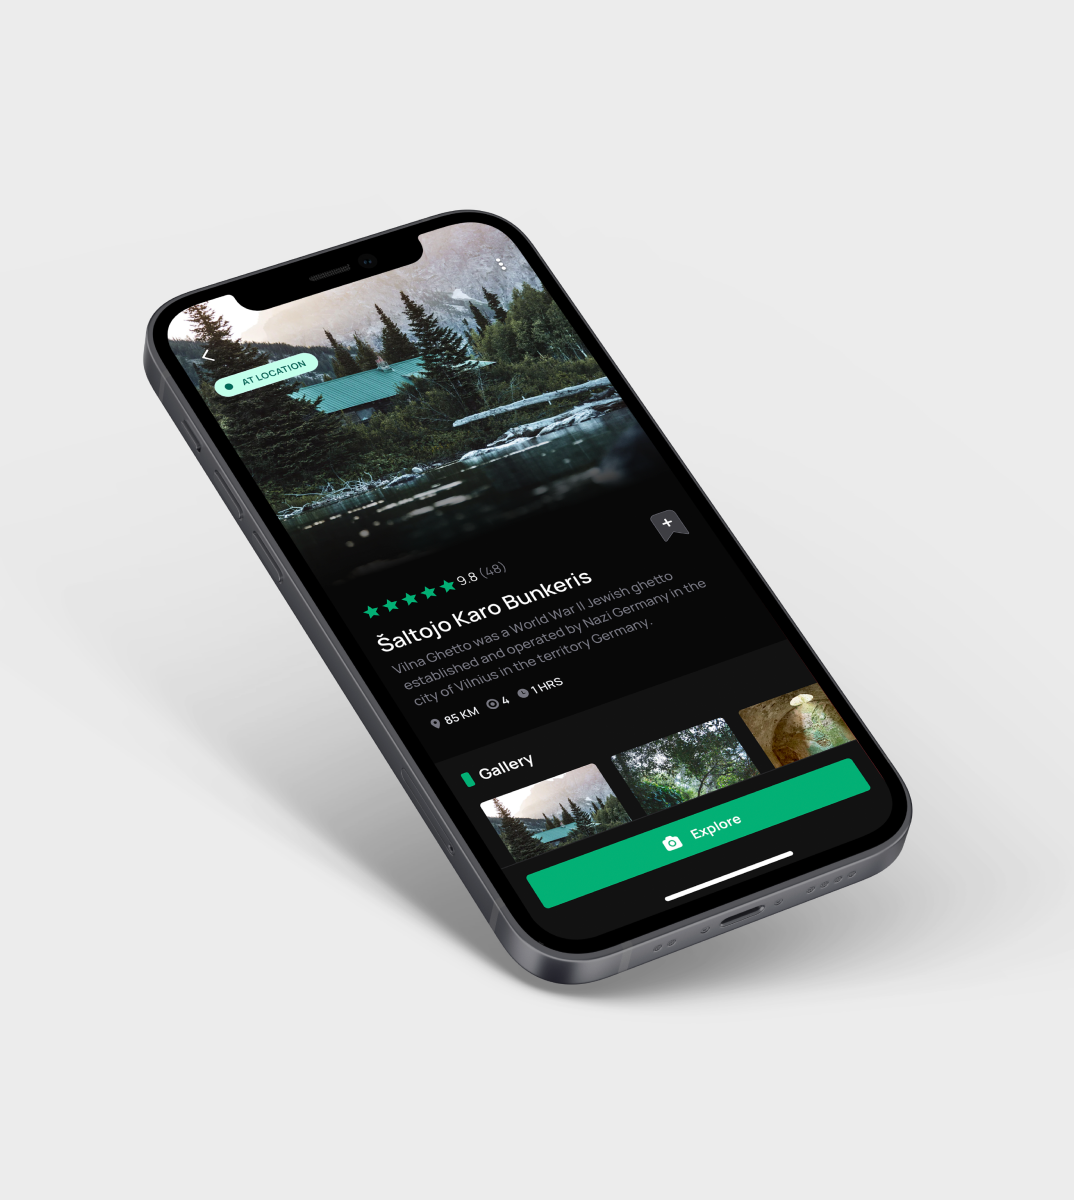 tripsolo mobile phone mockup with open app